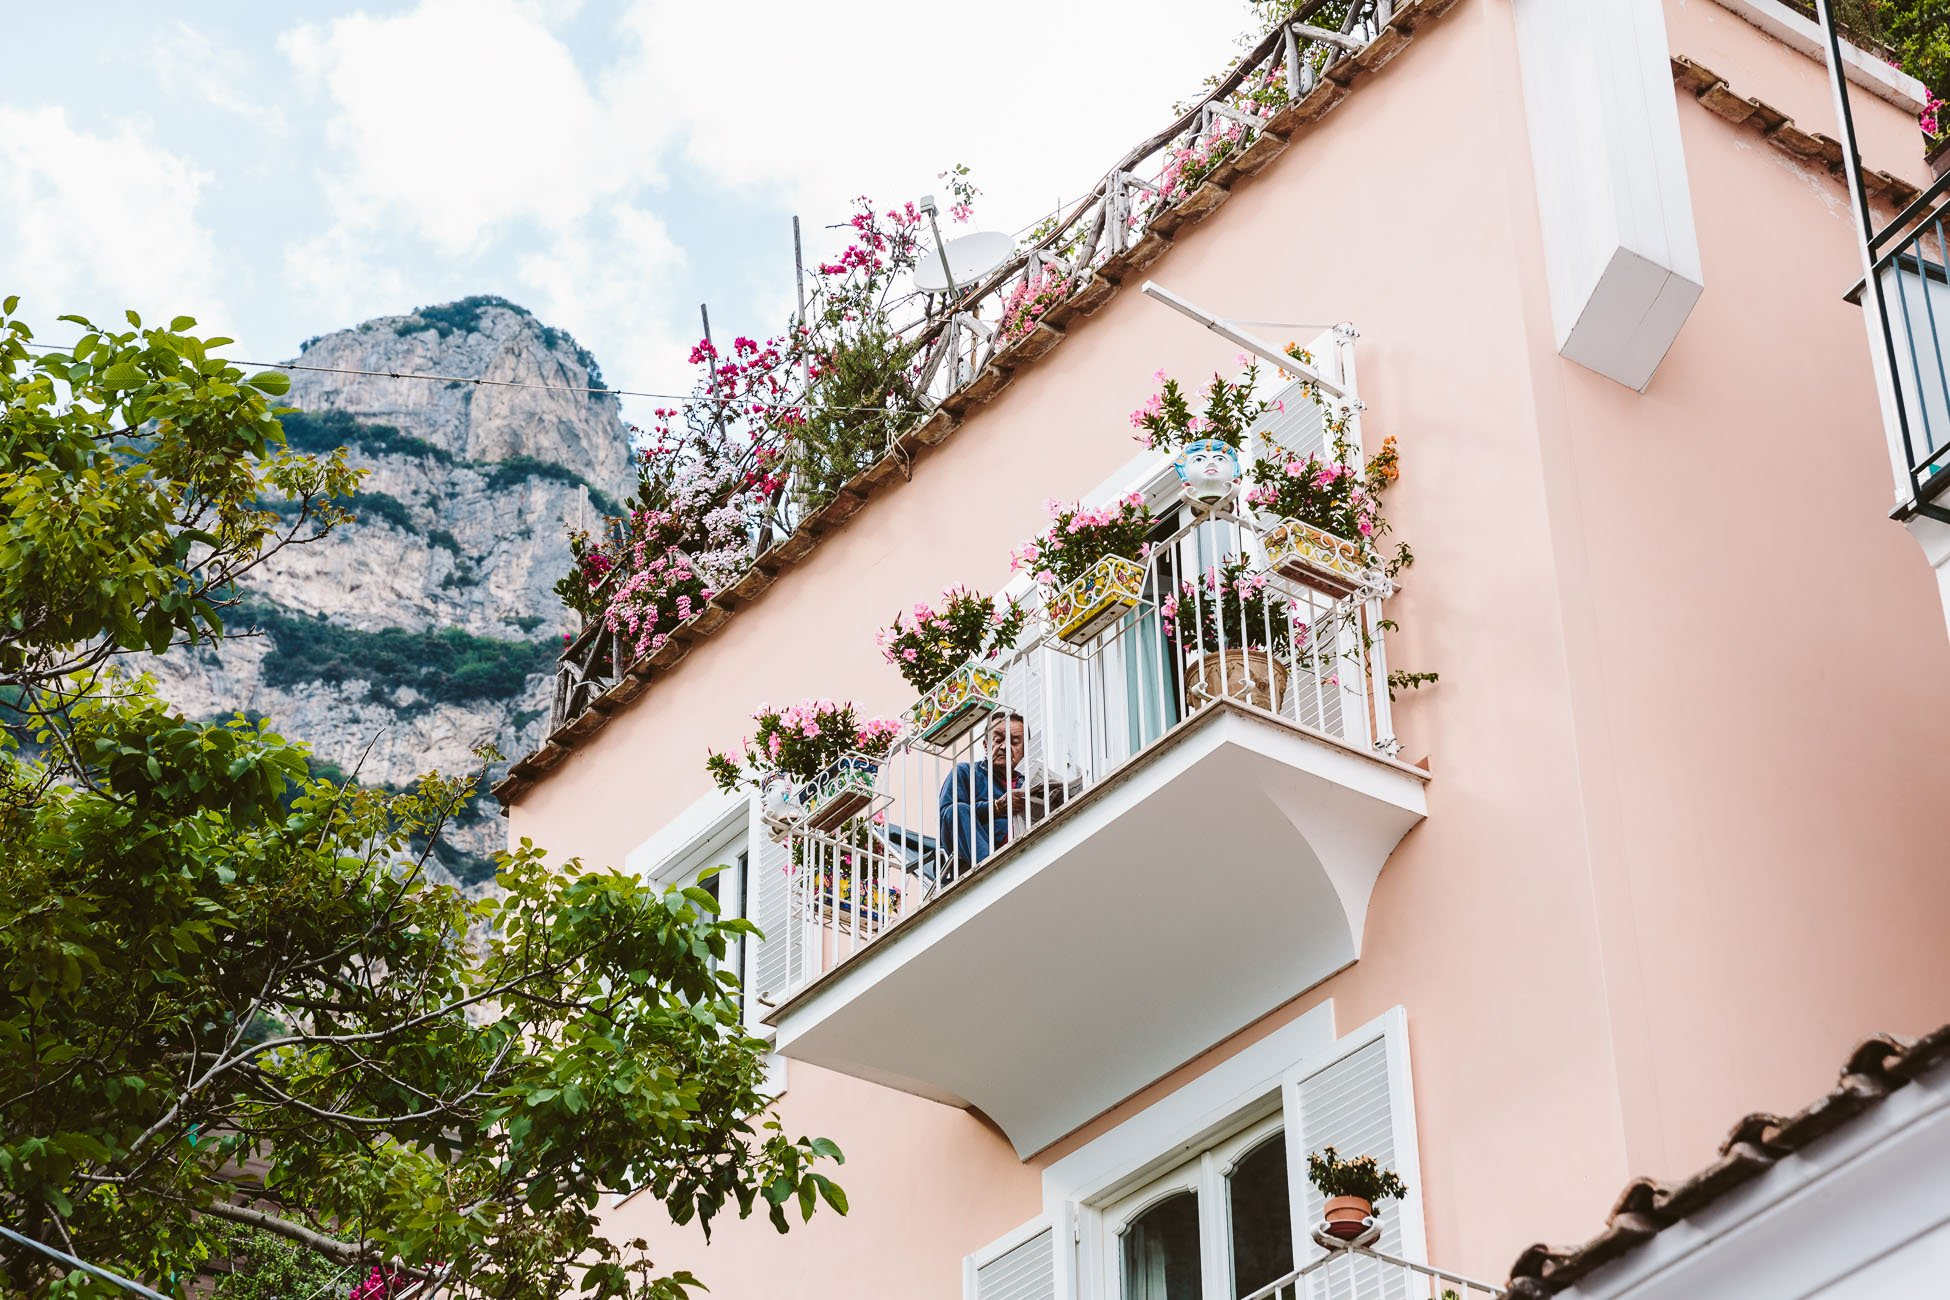 Italian Street Scene at the Amalfi Coast